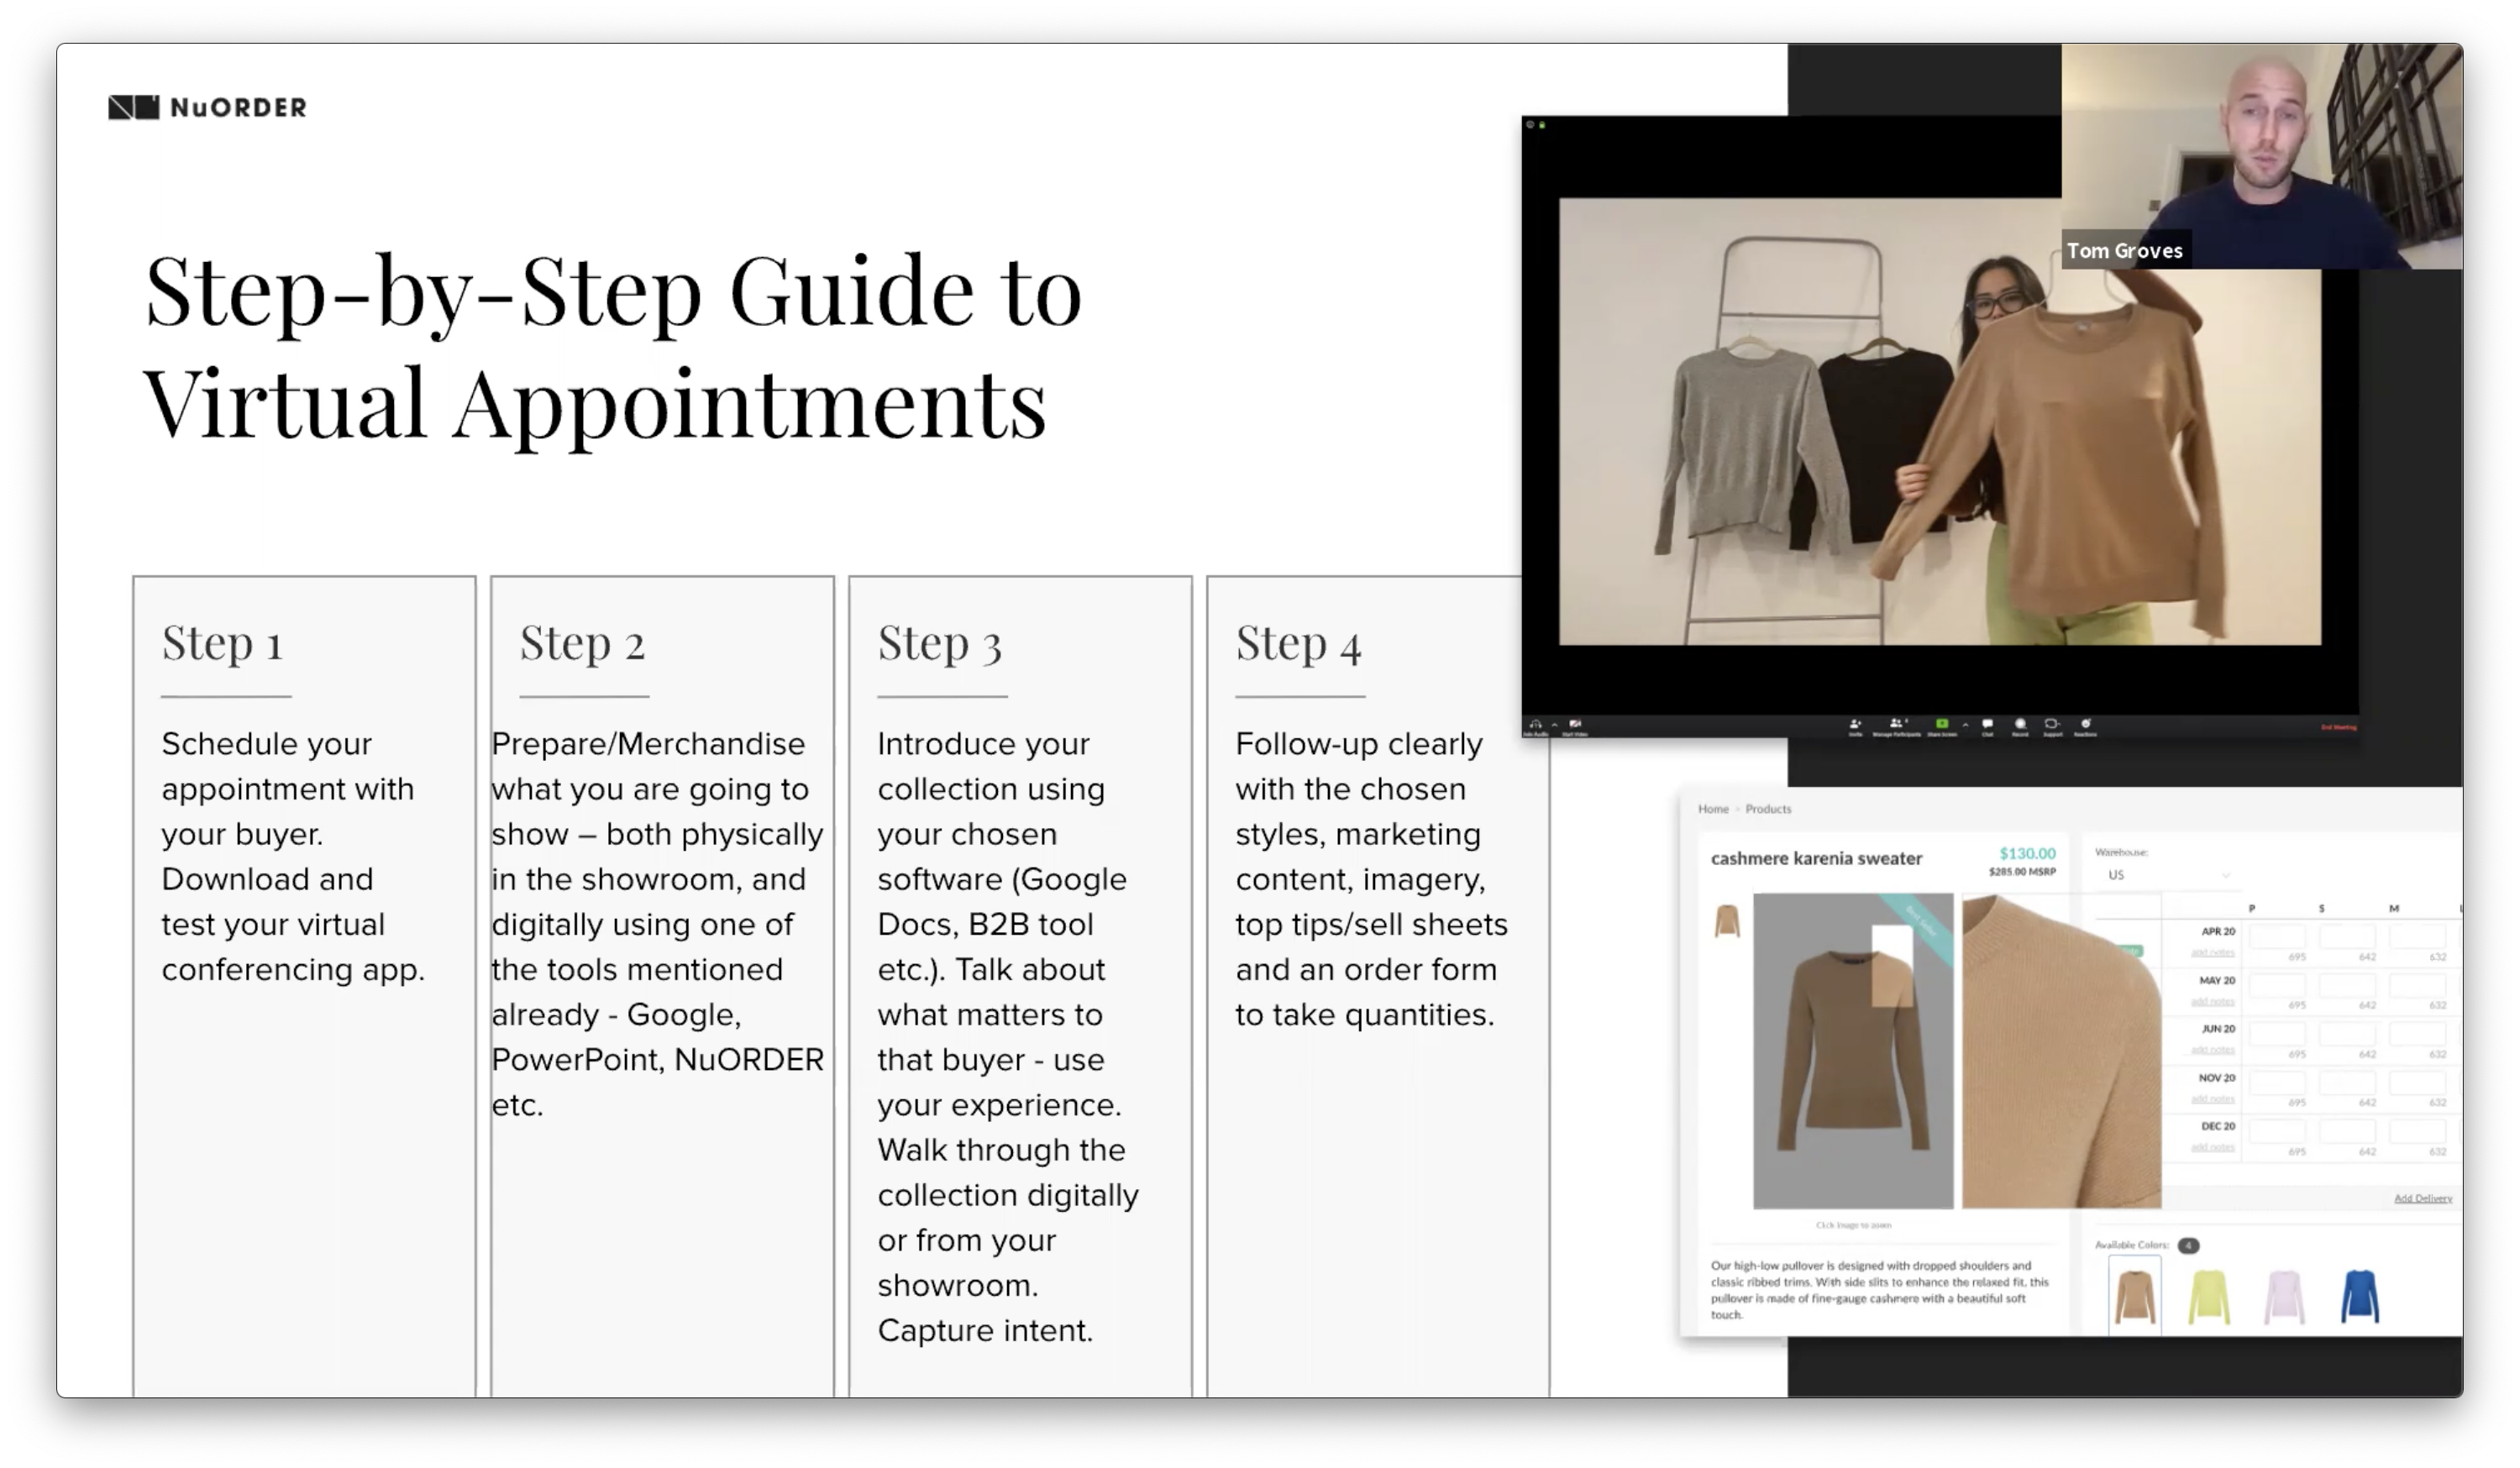 Step-by-step guide virtual appointment